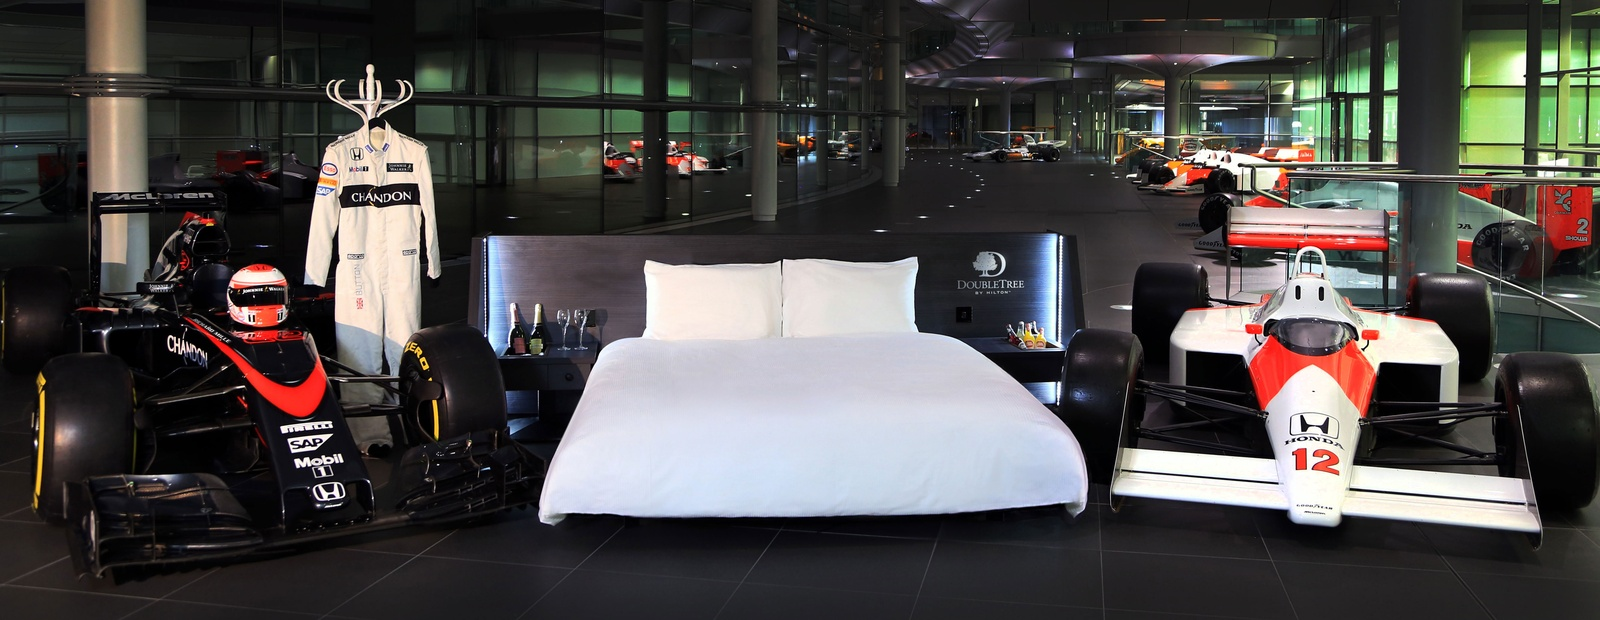 DoubleTree by Hilton Presents: 'A Night At McLaren'